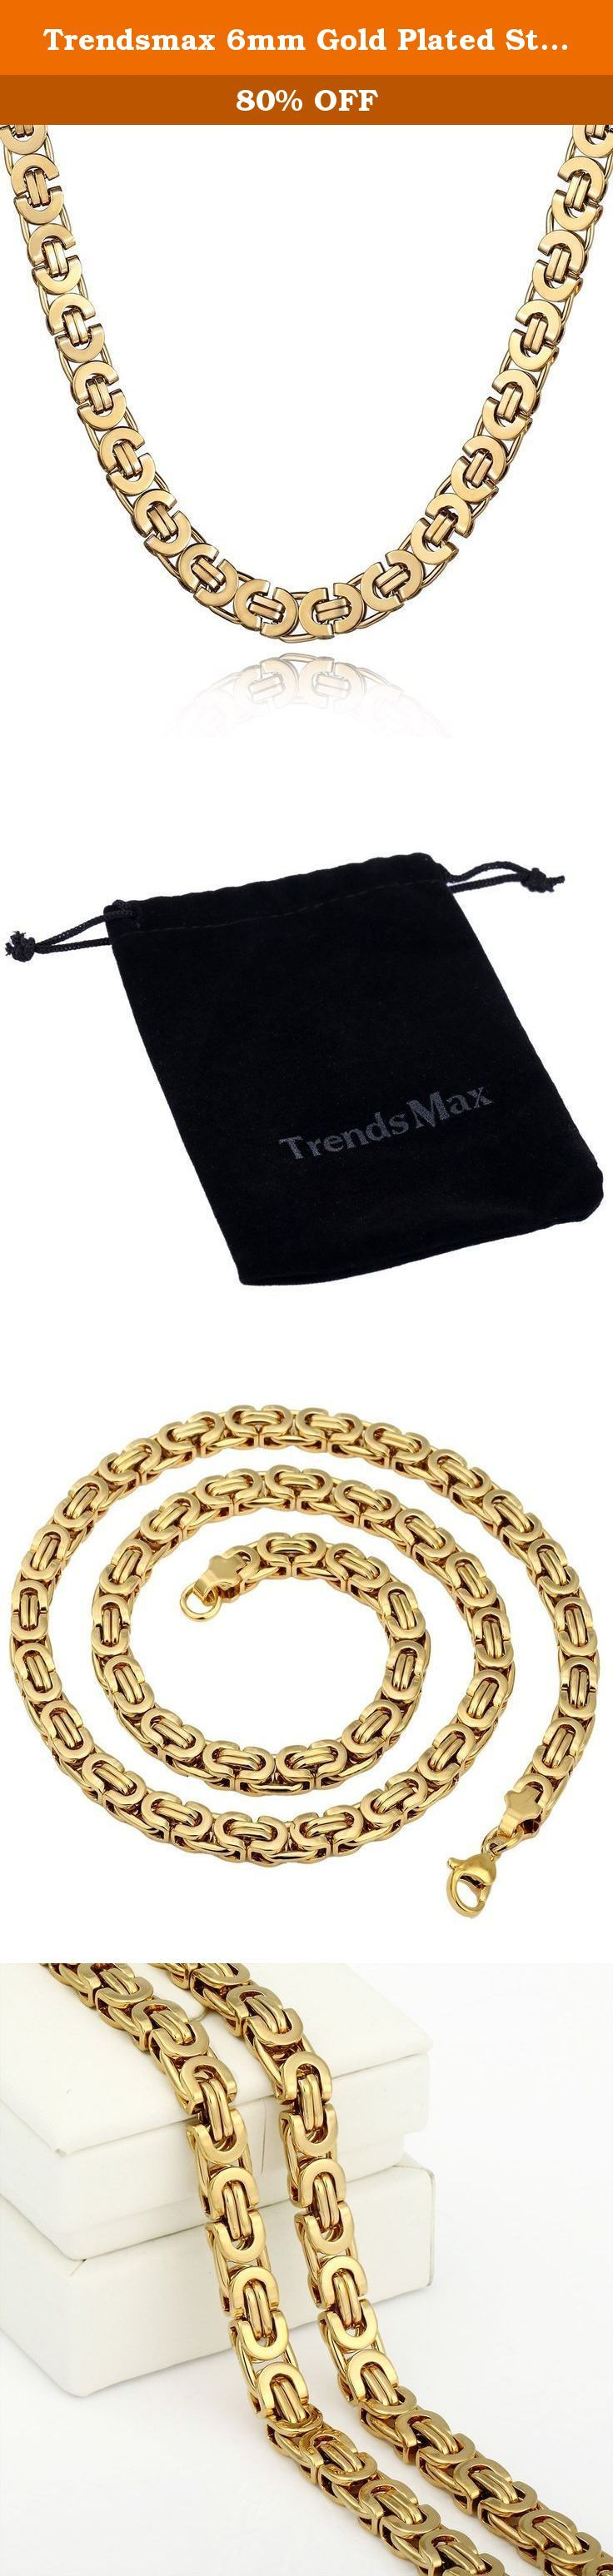 Trendsmax 6mm Gold Plated Stainless Steel Mens Chain Necklace Flat Byzantine Link for Men Boy Length 18-36 inch. Material: Stainless Steel. Come With a Trendsmax Bag. Measurement: Length:18-36inch Width:6mm. Mens Chain Boys Necklace Jewelry, Please check the dropdown menu to see more length option. Thanksgiving, Christmas, Birthday, Graduation, Back to School Gift.